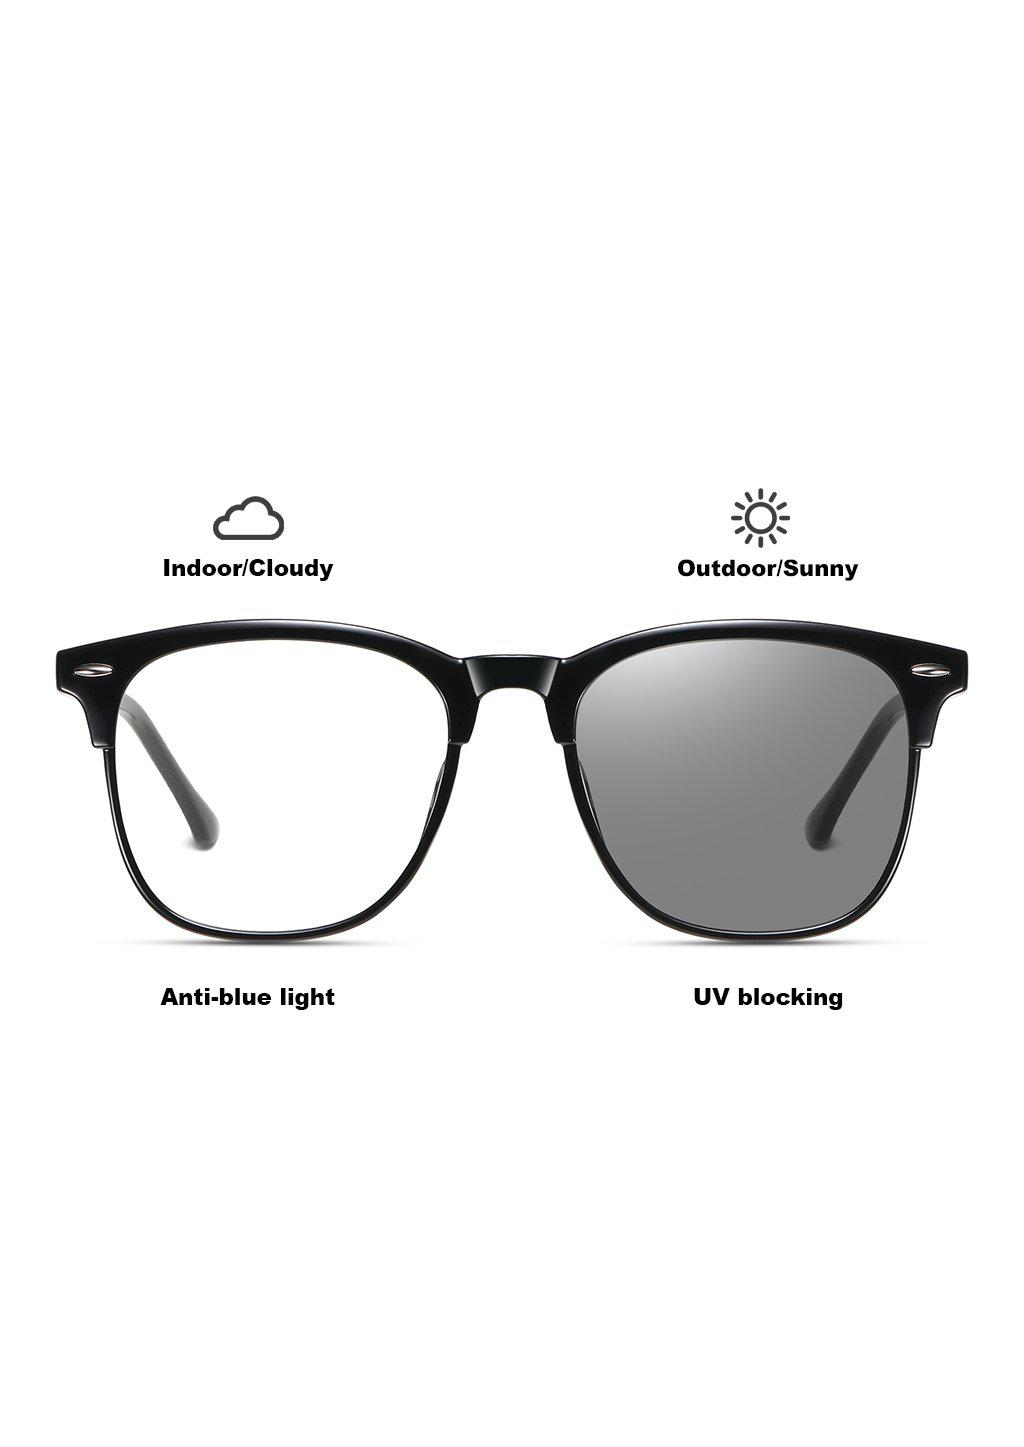 Icon Photochromic anti bluelight glasses that work like two in one. Turns dark in the sun and clear inside.